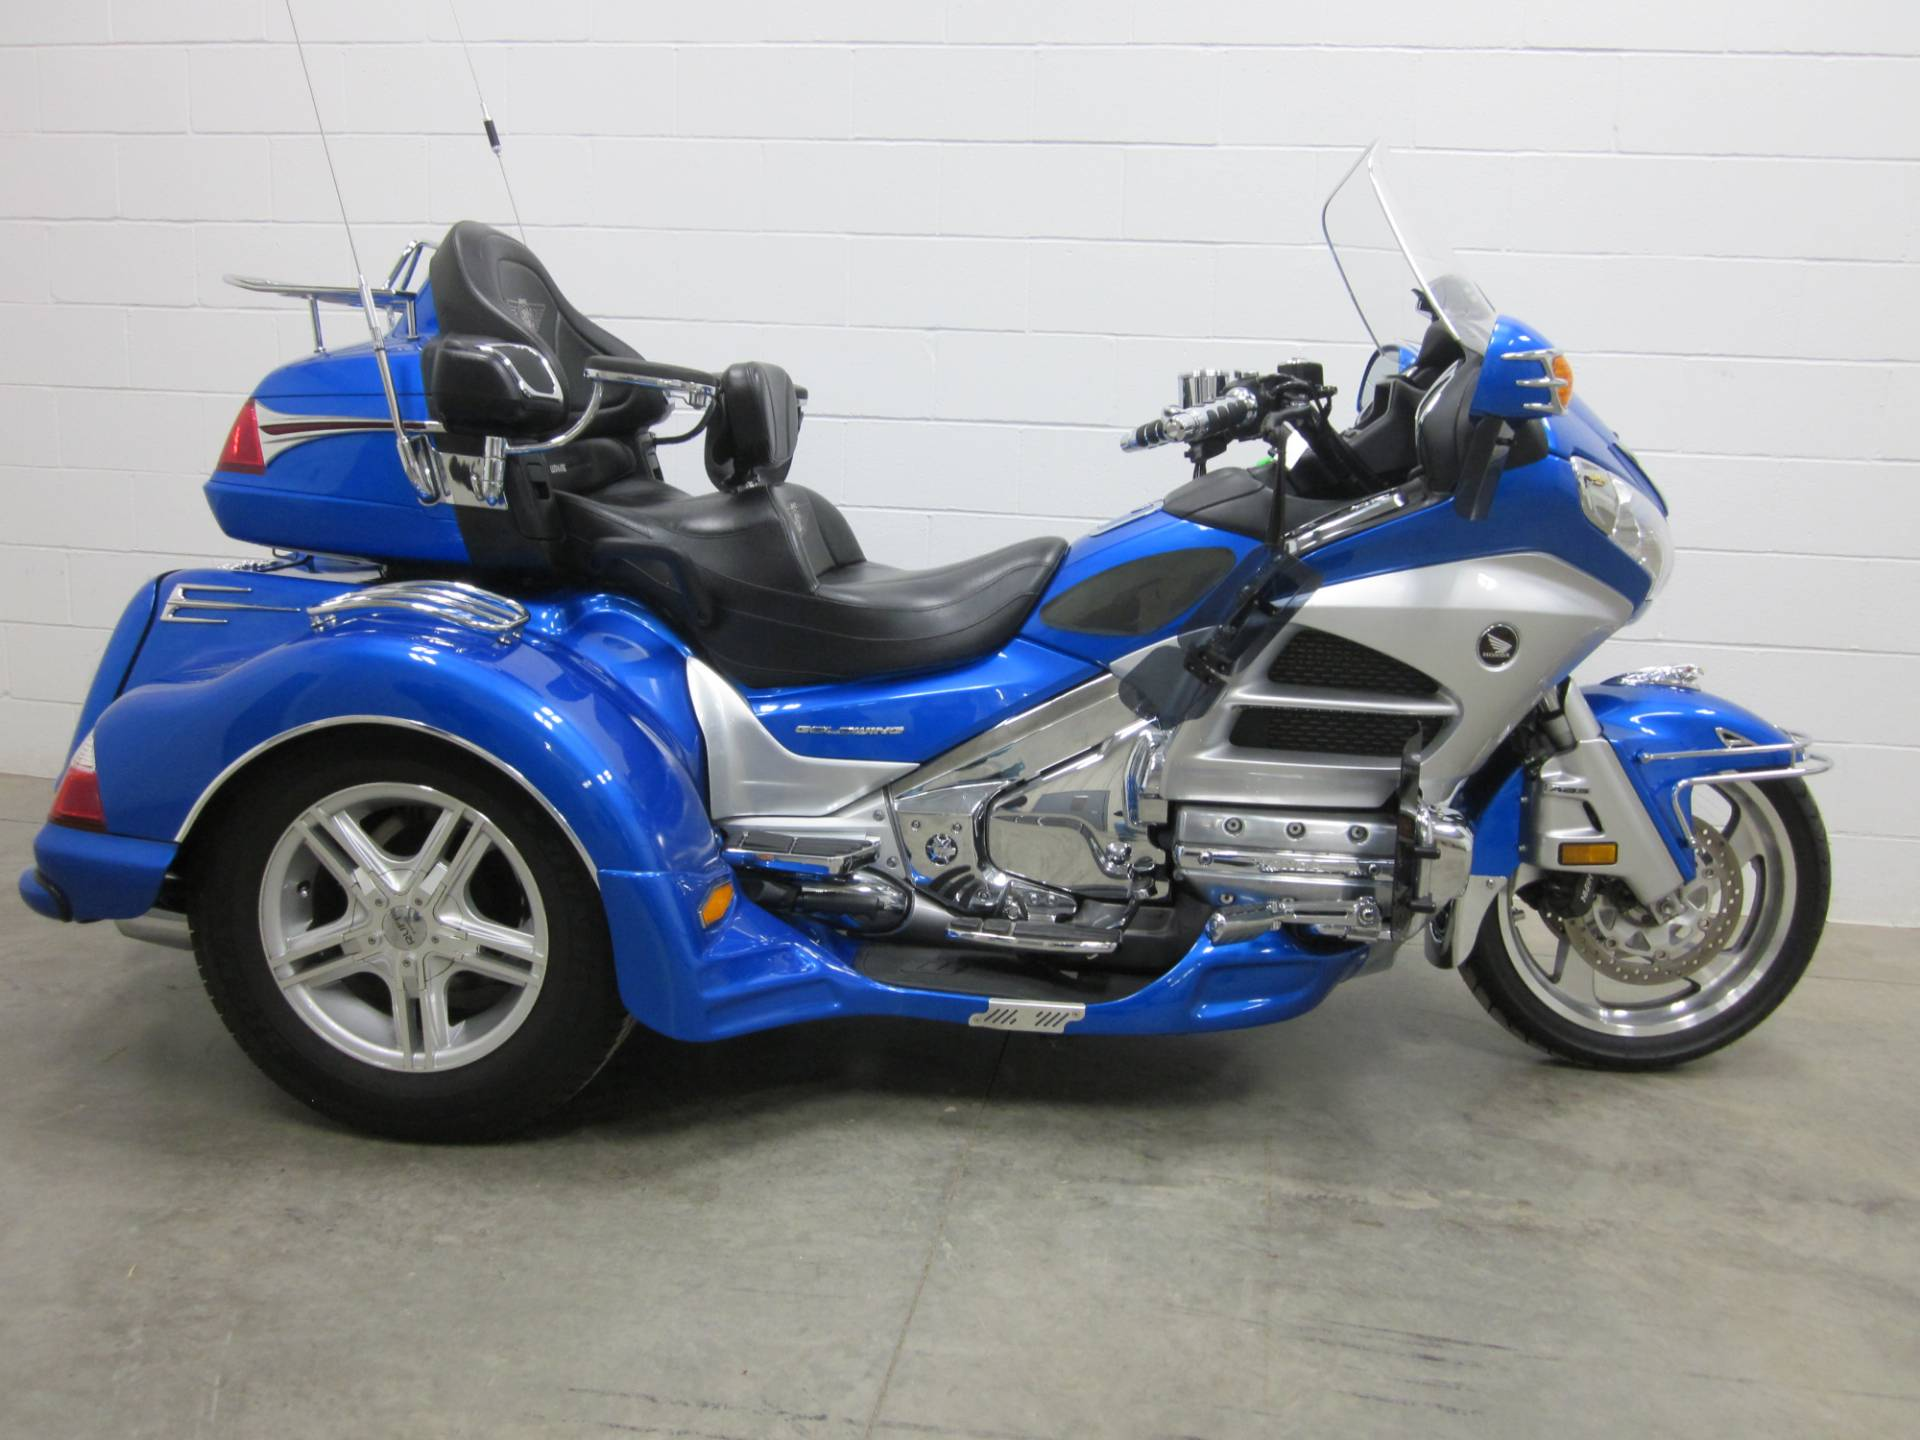 Used Atvs Motorcycles Scooters Utvs For Sale In Autos Post